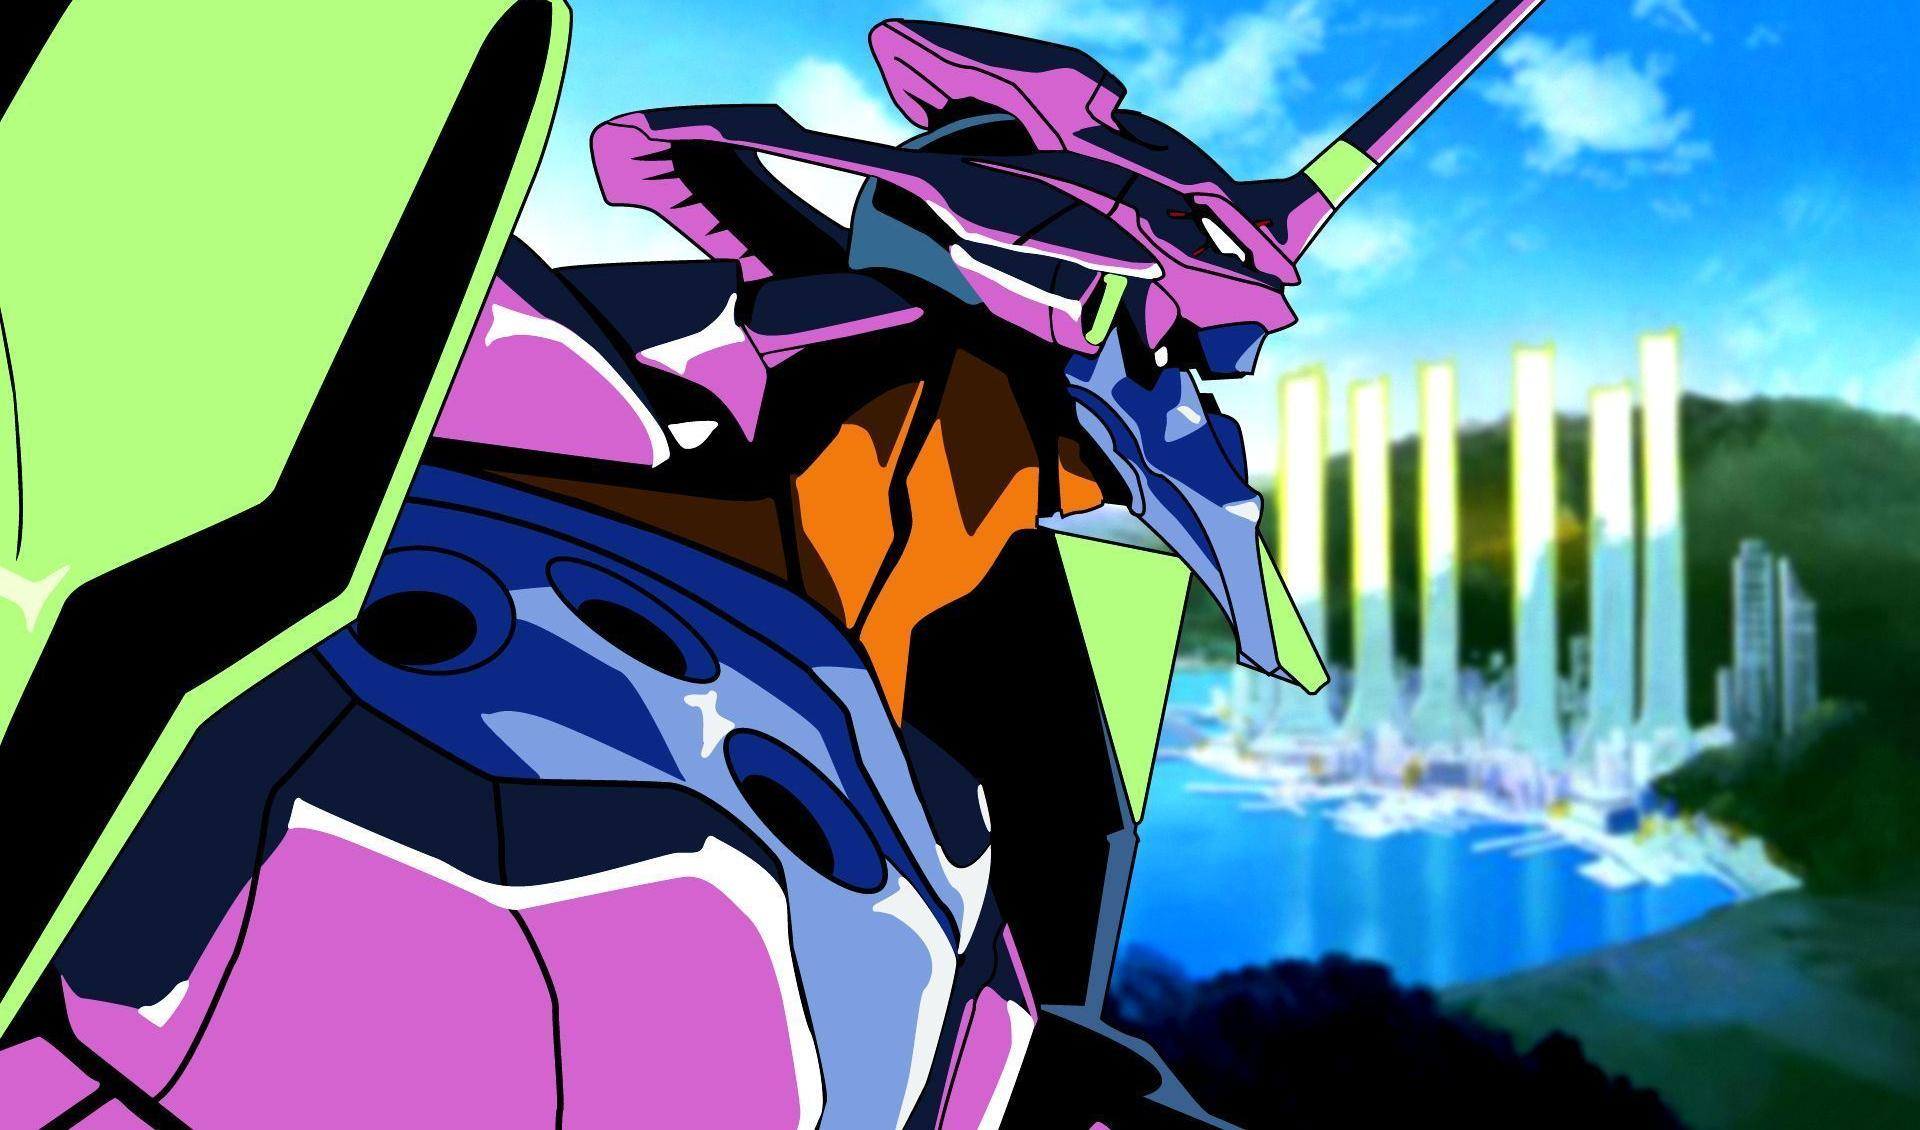 Alien from Neon Genesis Evangelion wallpapers HD quality